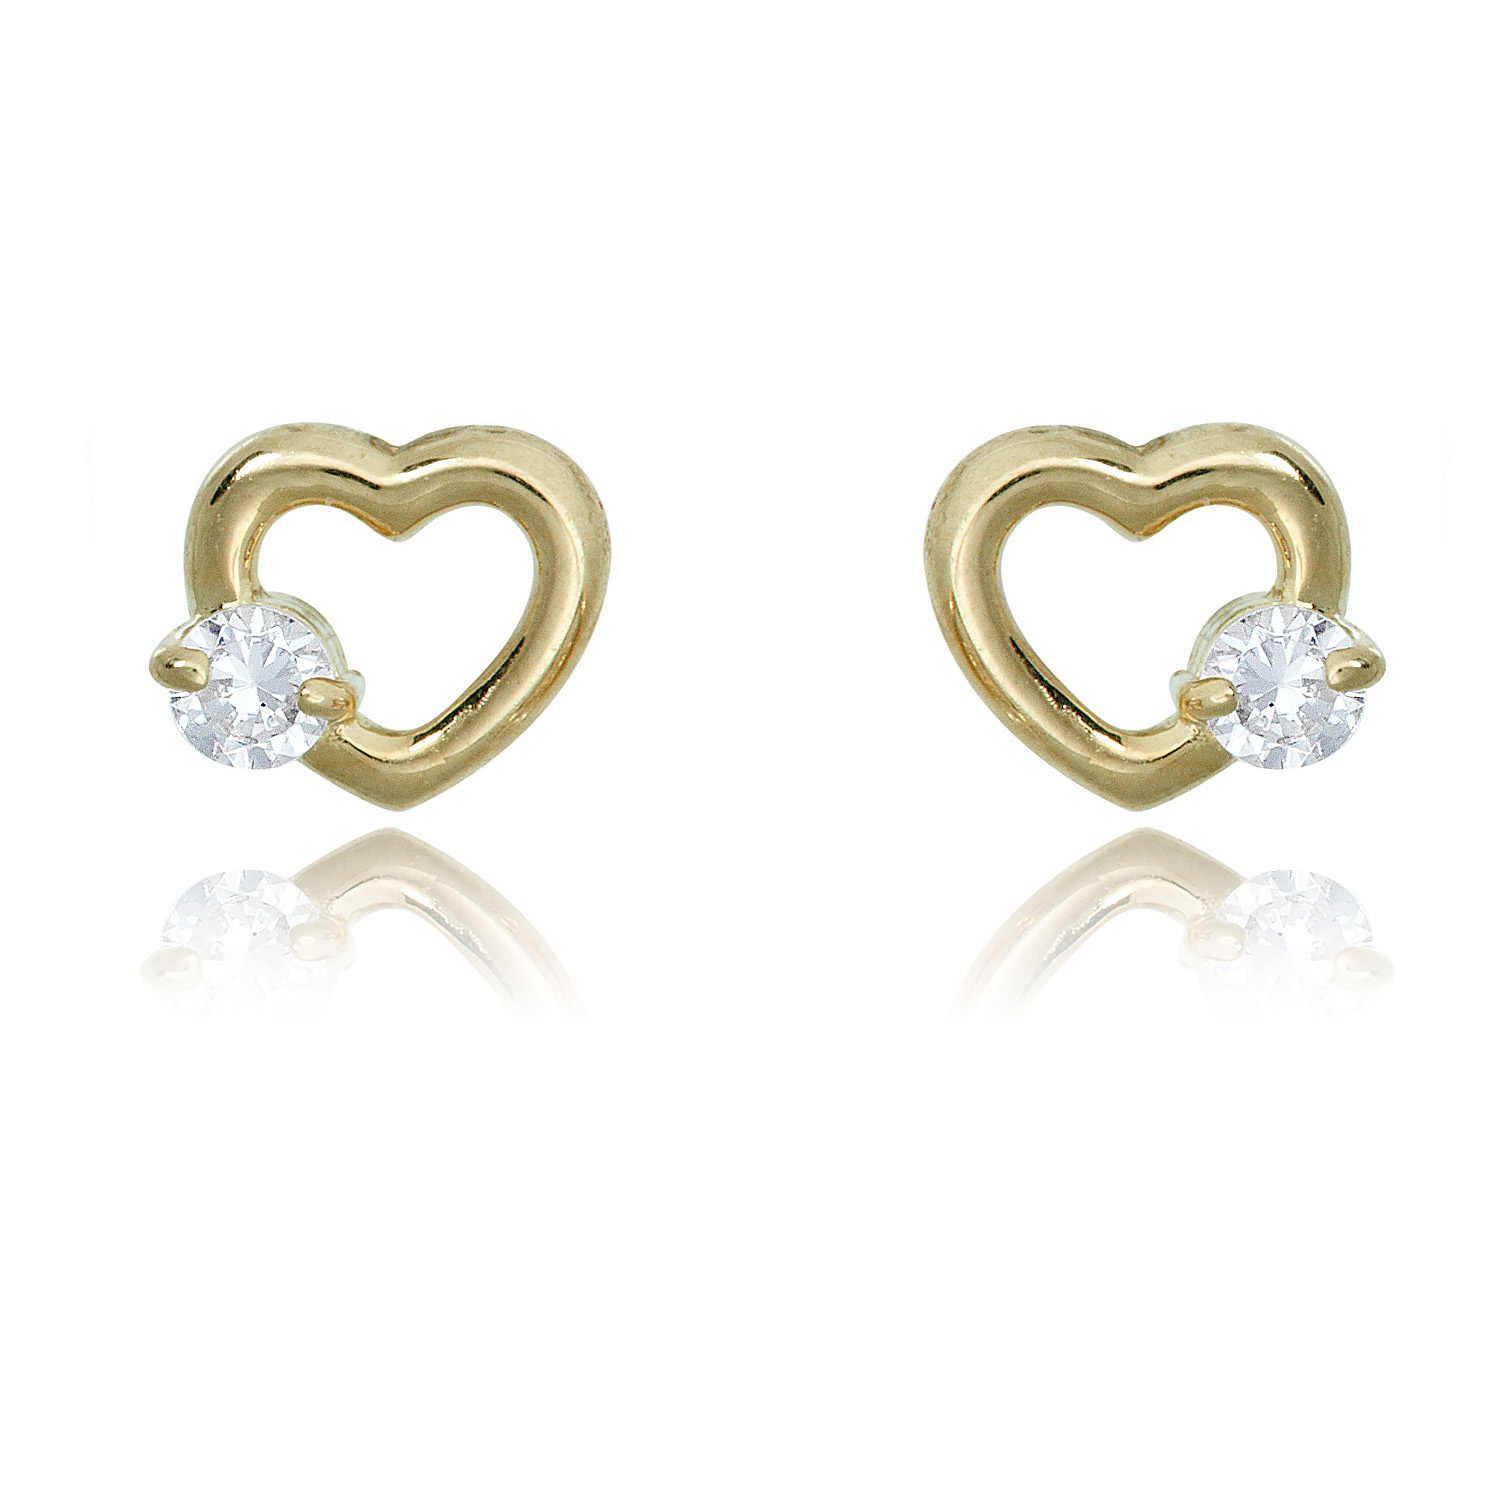 10K Gold Round Simulated Diamond CZ Stud Earrings in Yellow or White Gold